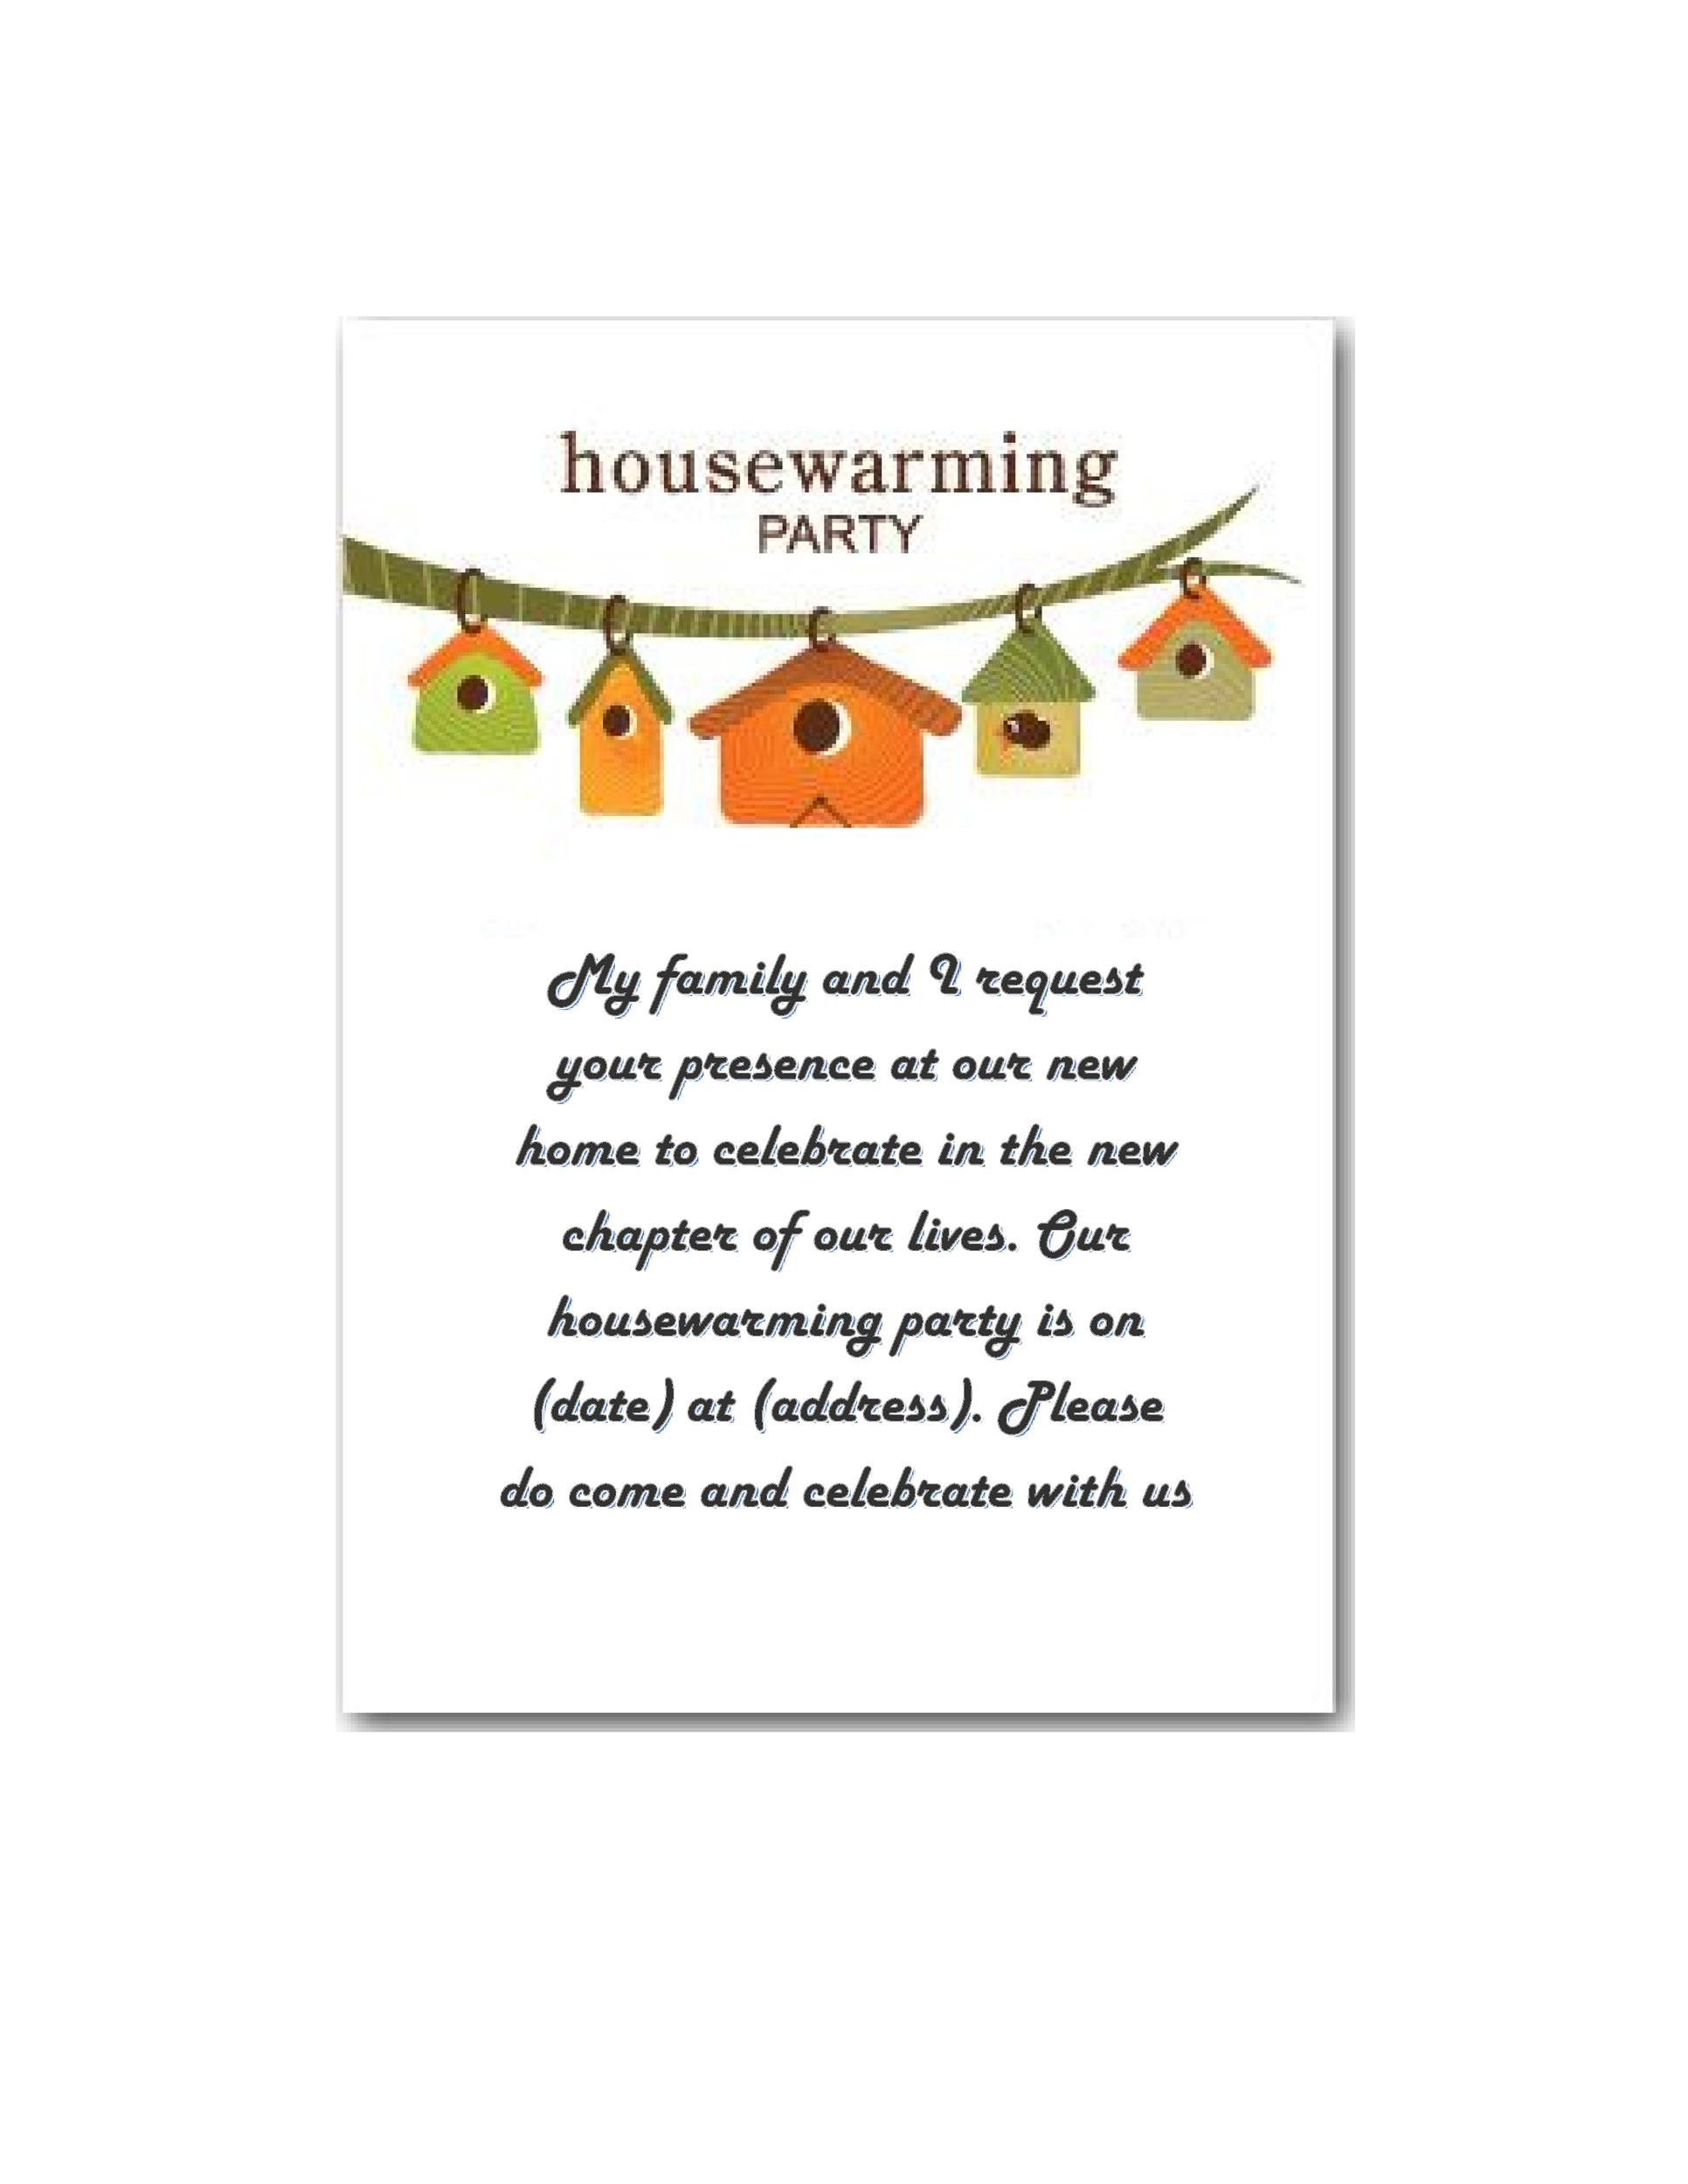 graphic about Printable Housewarming Invitations named 40+ Cost-free Printable Housewarming Social gathering Invitation Templates